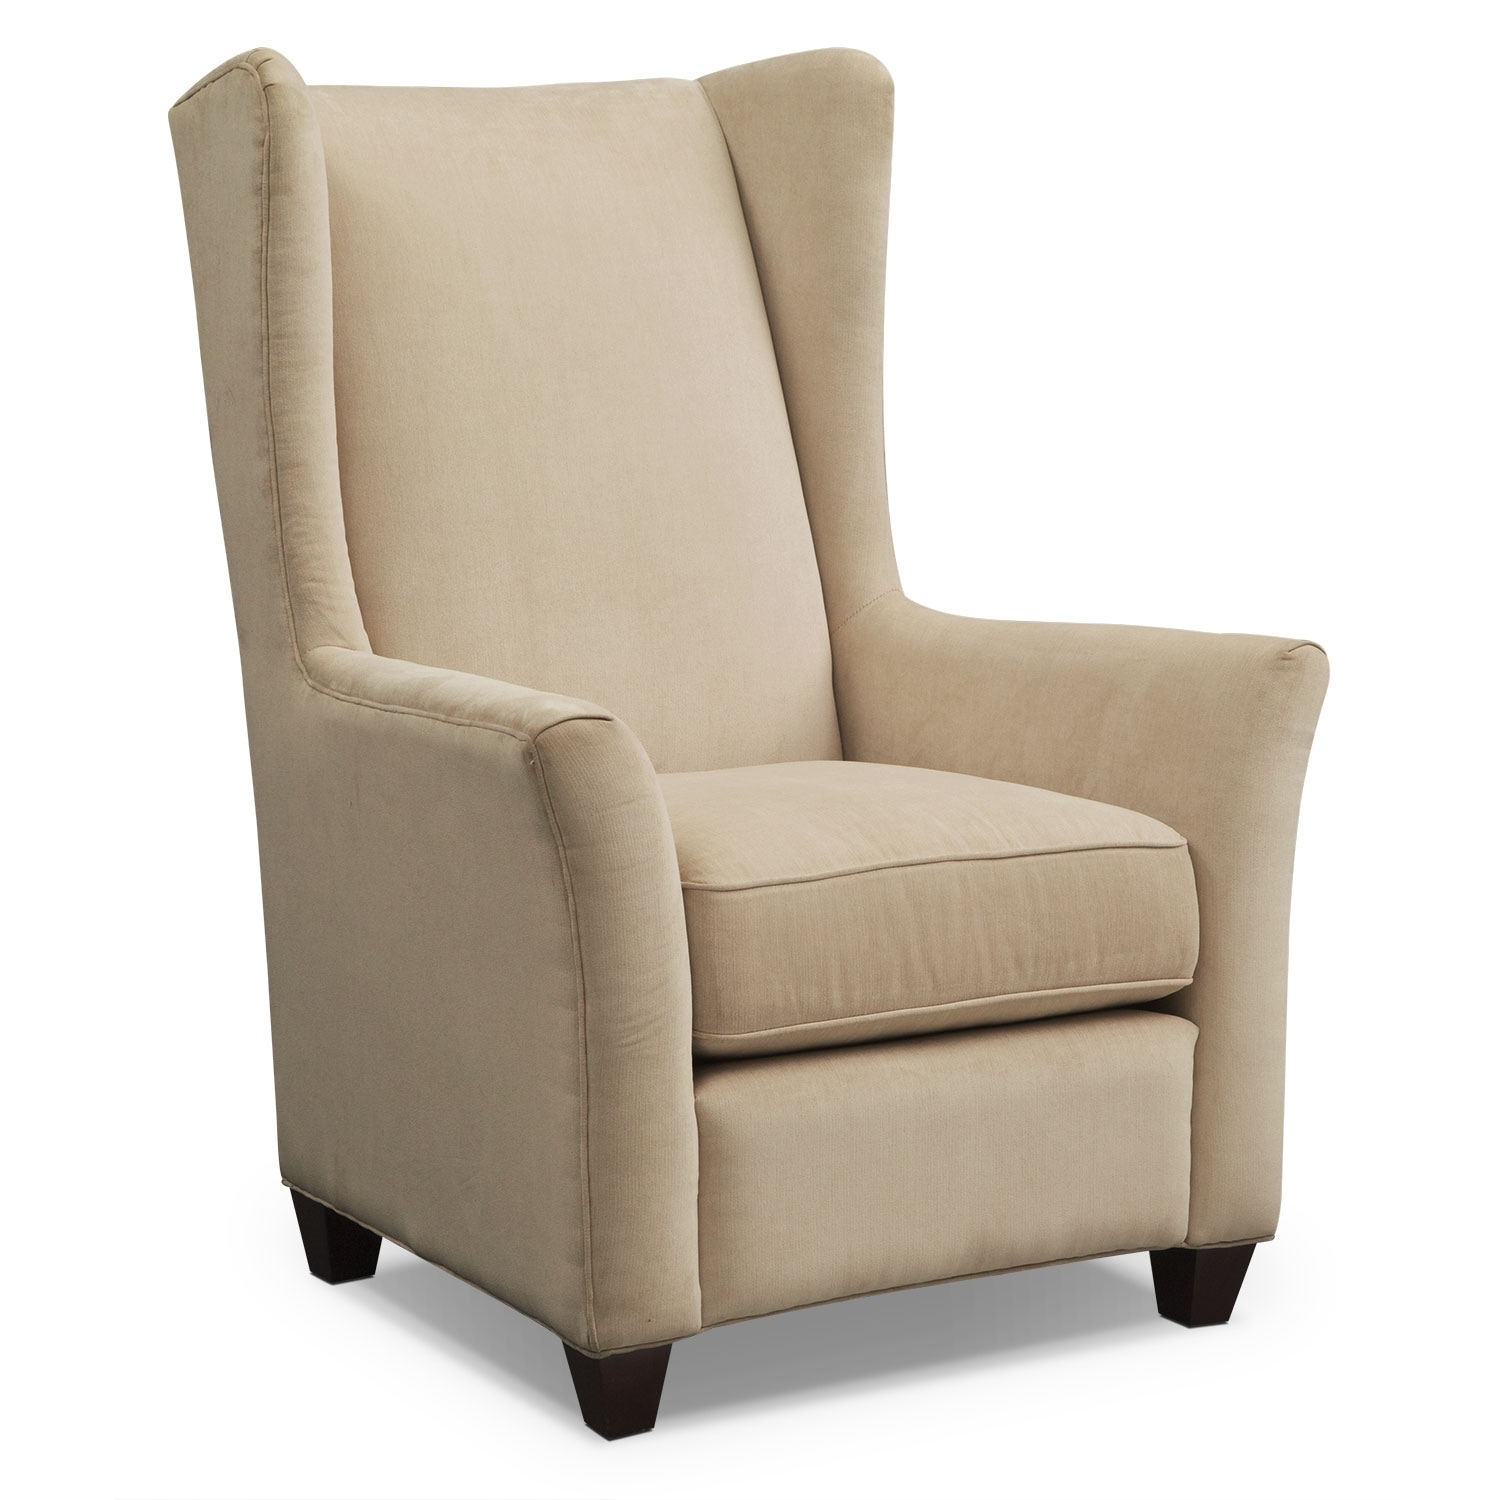 Corrine Accent Chair - Ivory